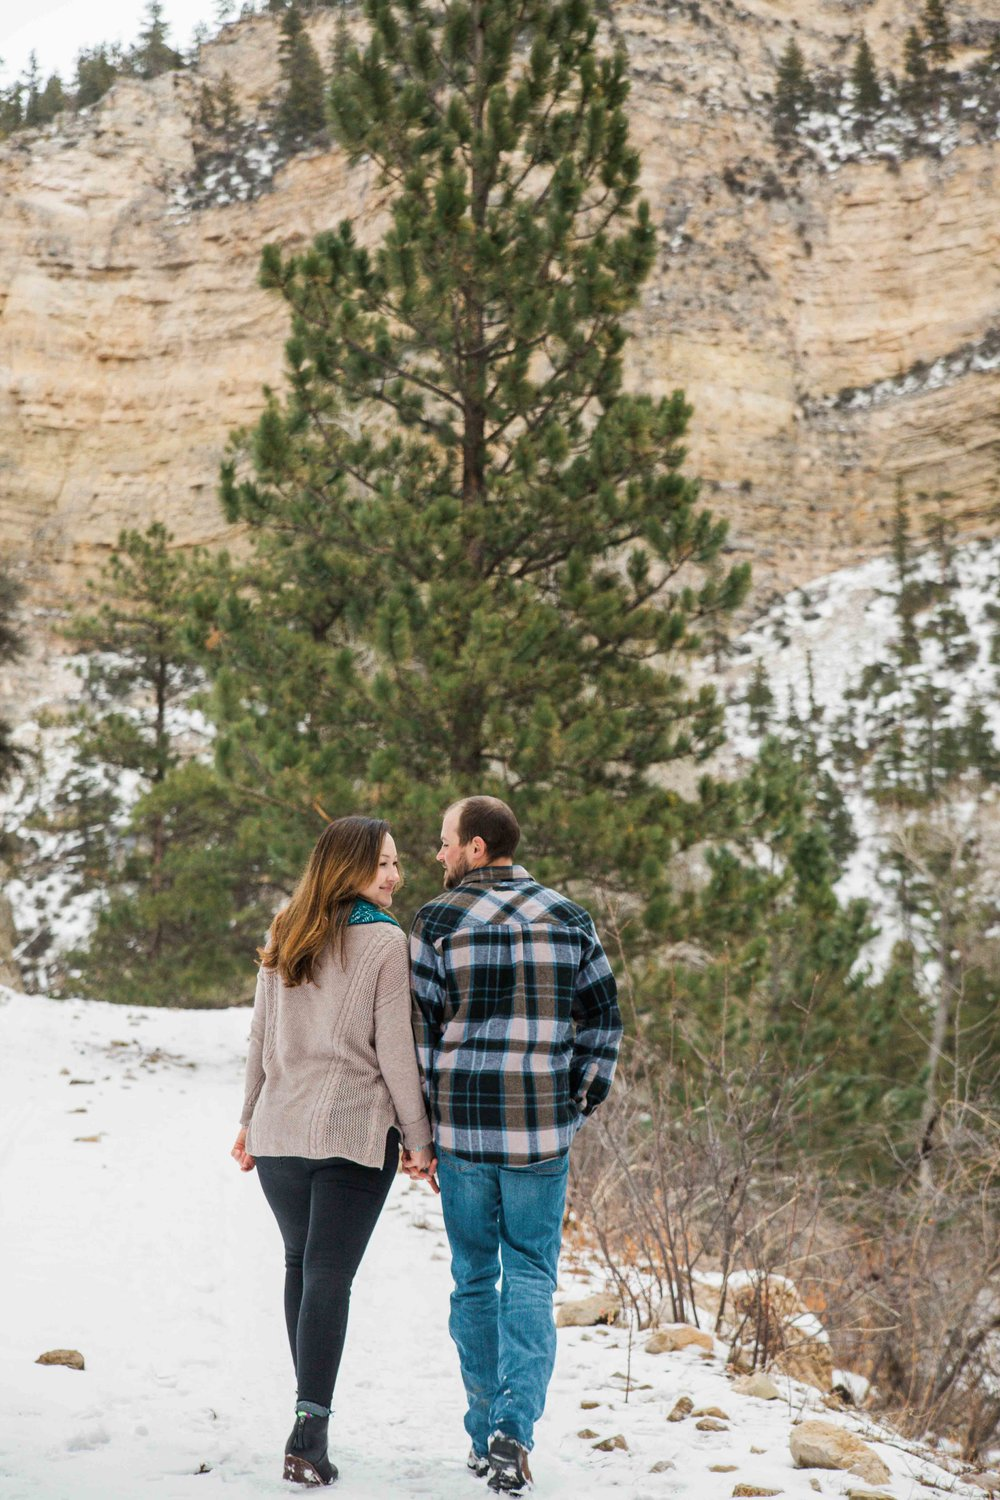 Walk with me - Sheridan Wyoming - Kerns Photography